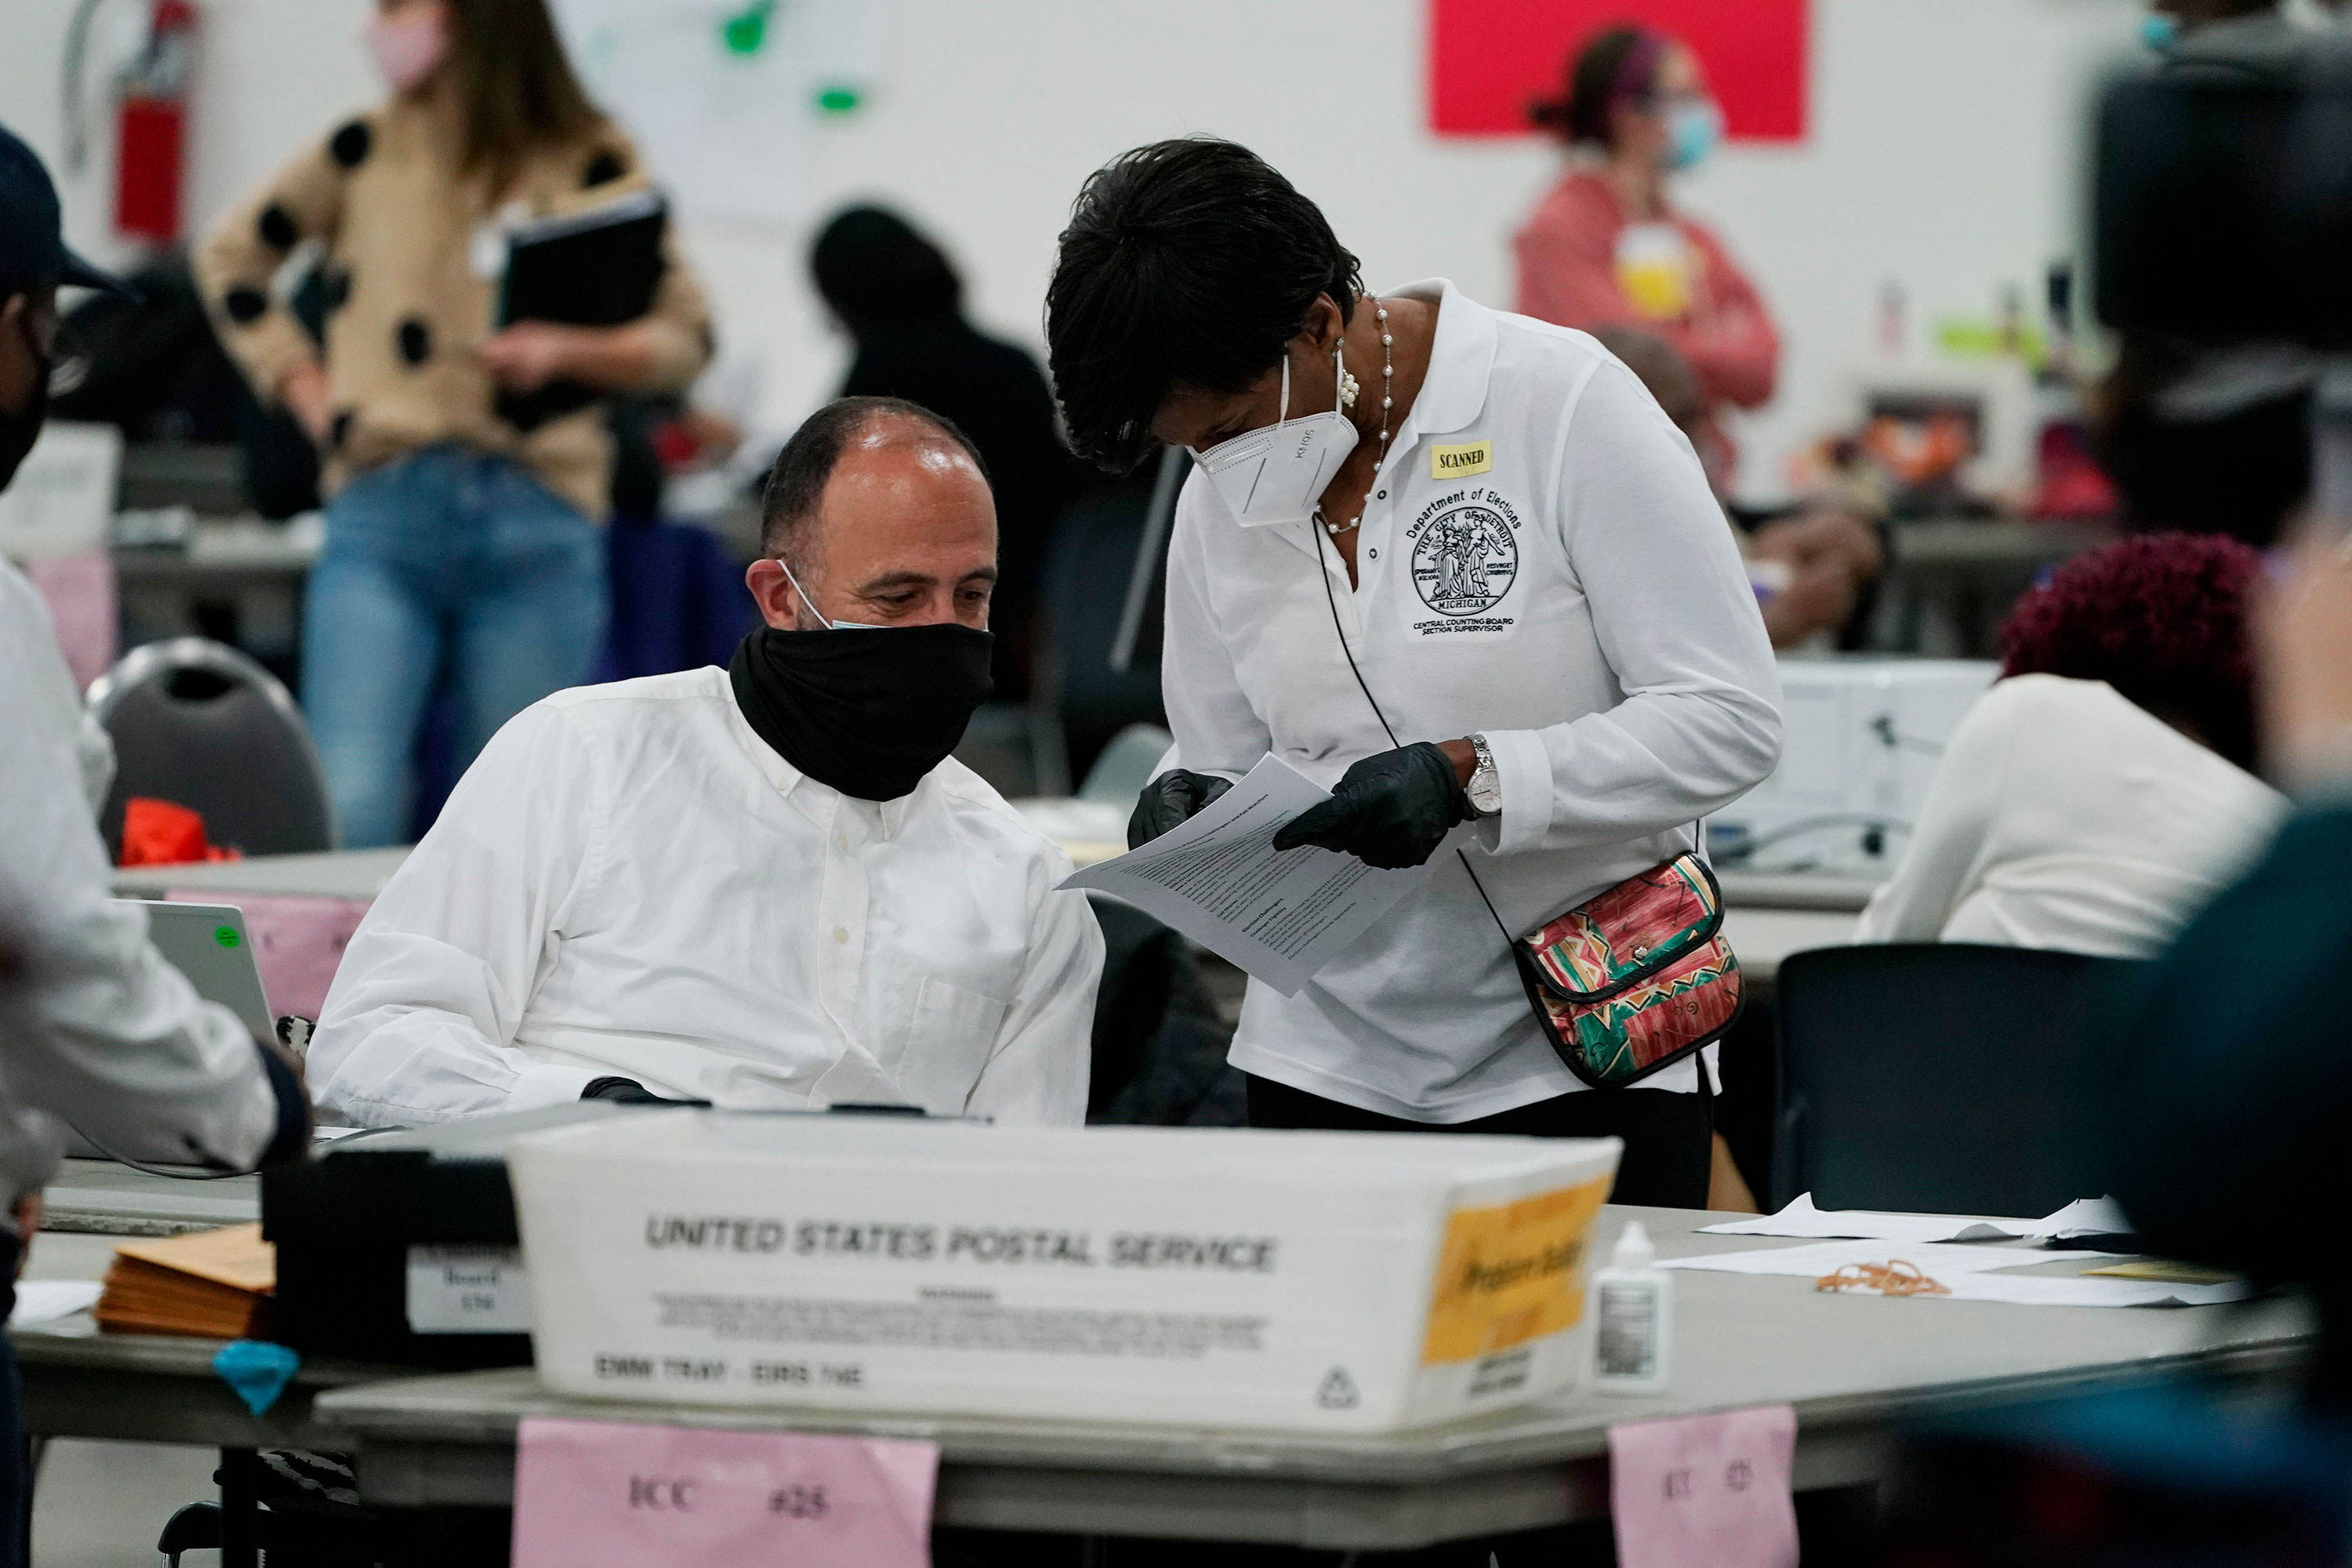 A worker checks with an election supervisor at the central counting board in Detroit on November 4.